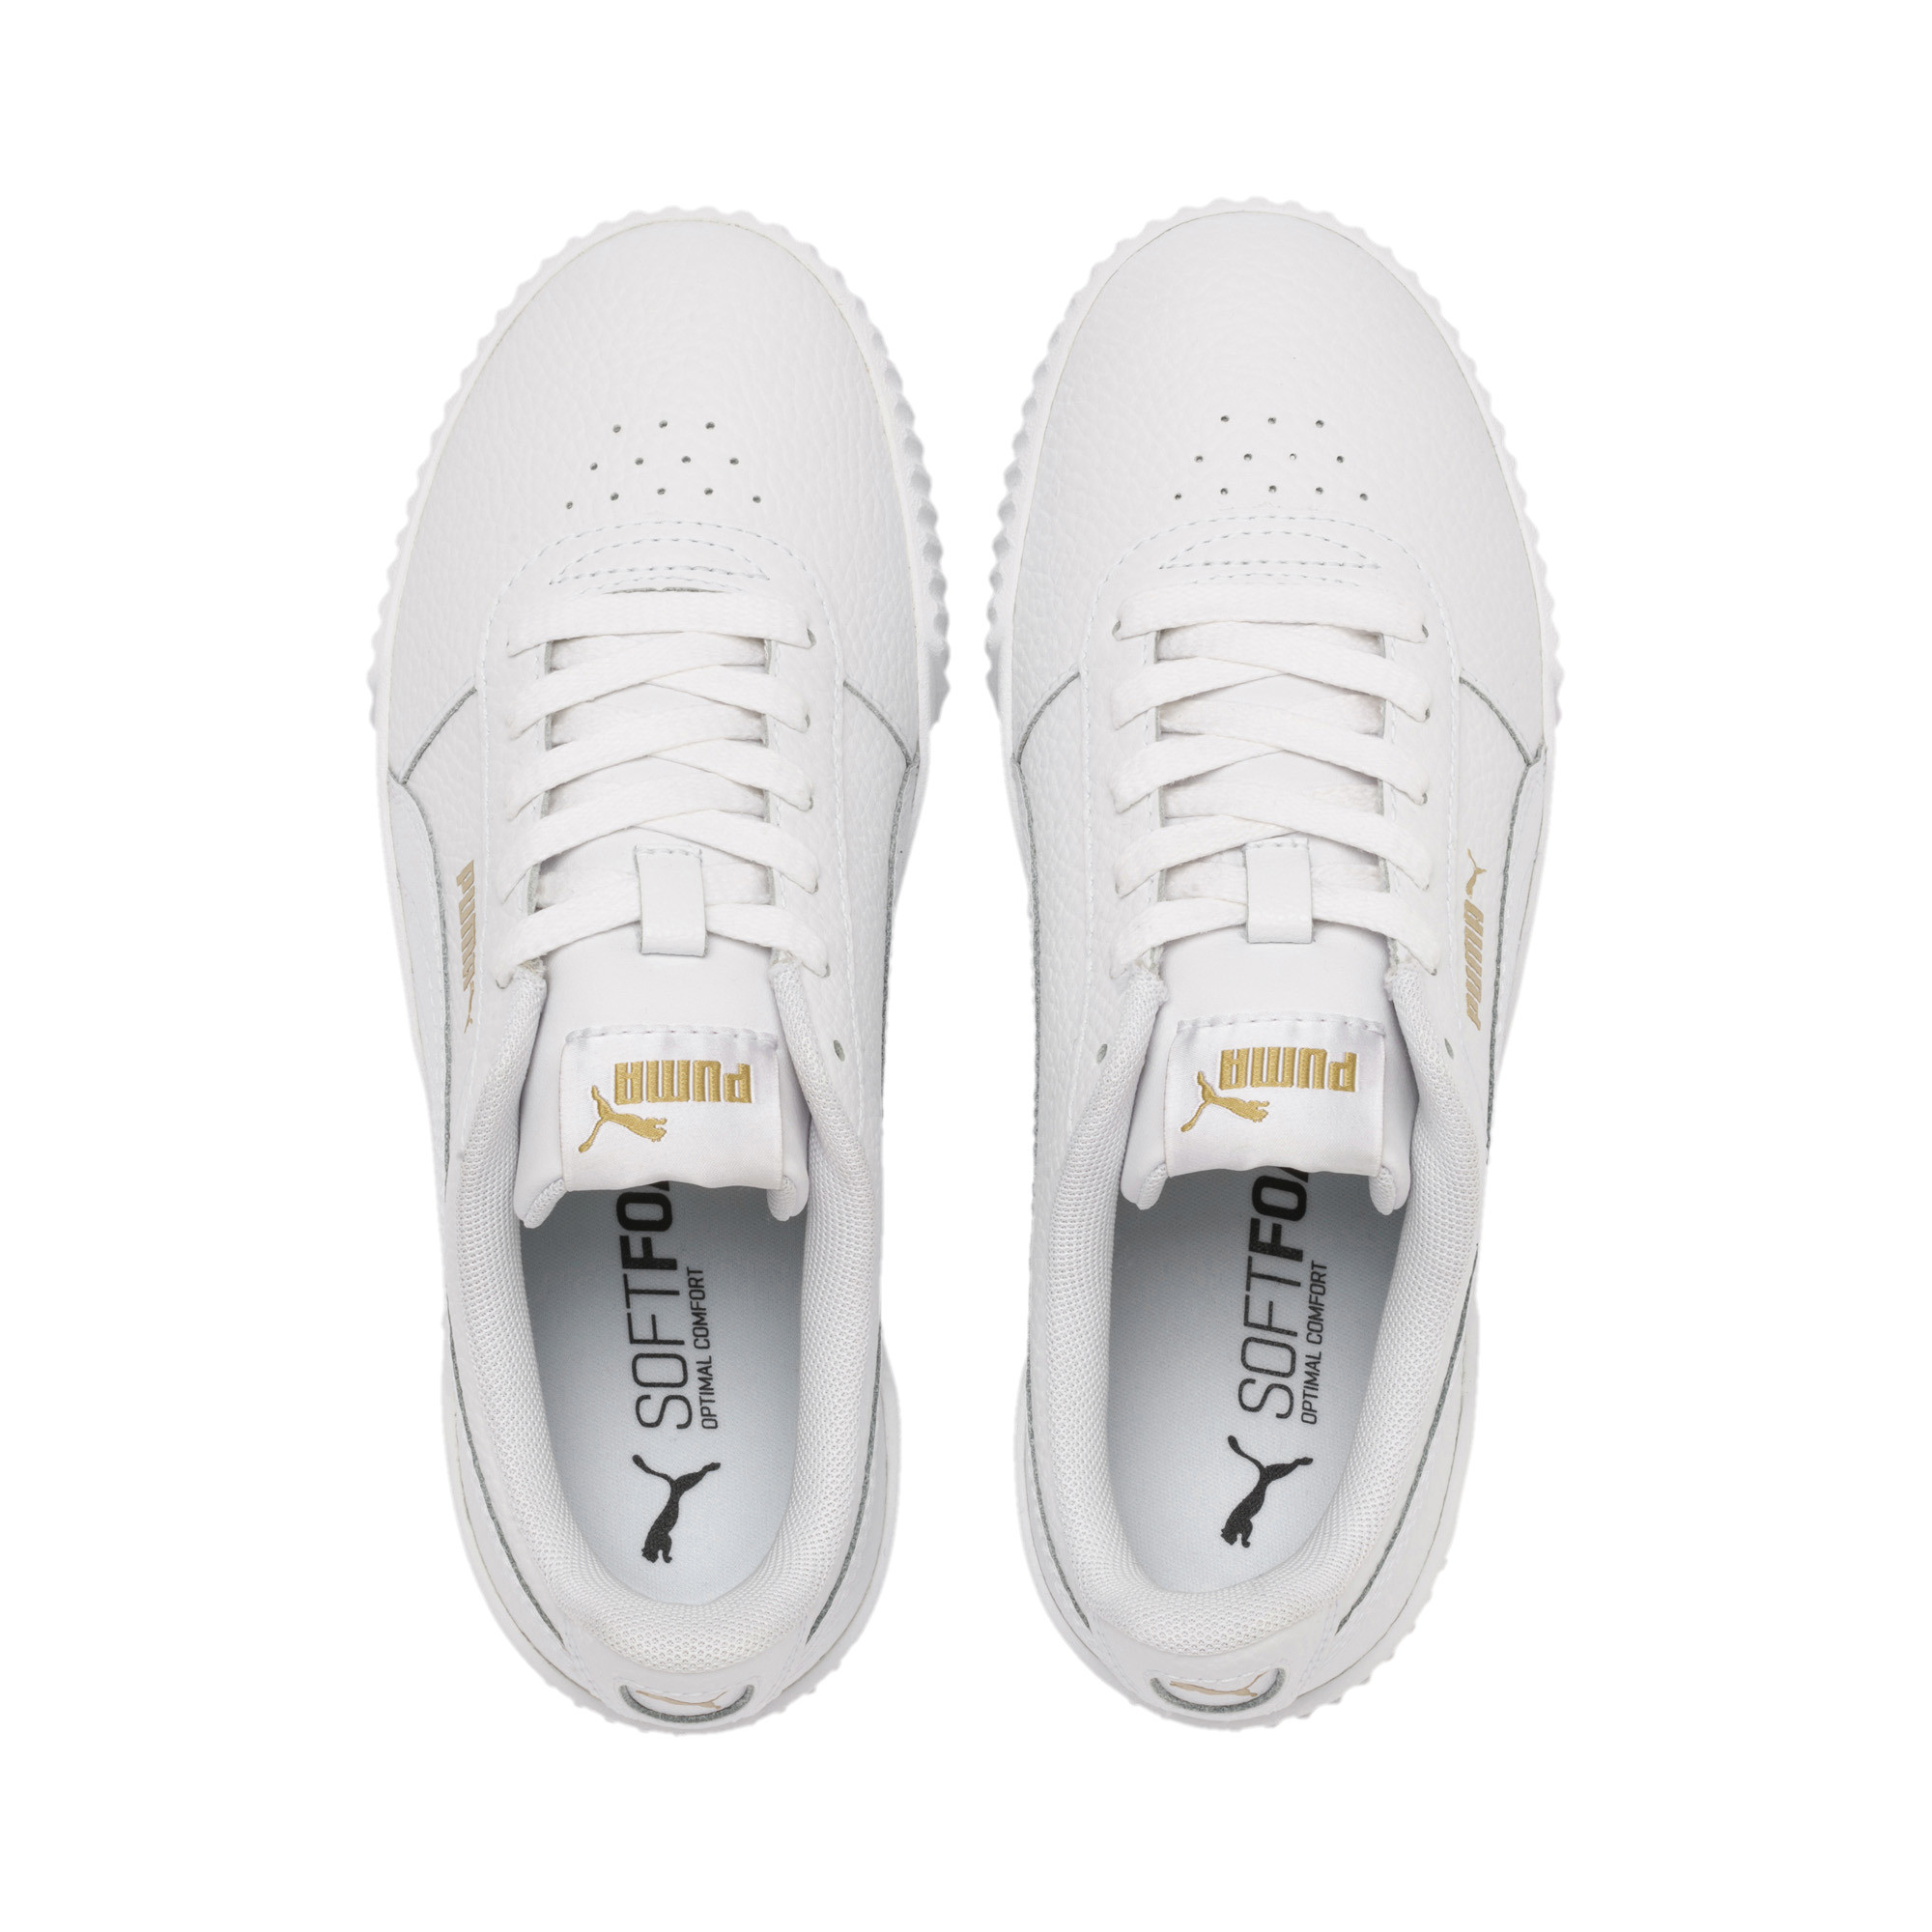 PUMA-Women-039-s-Carina-Lux-Leather-Sneakers thumbnail 8